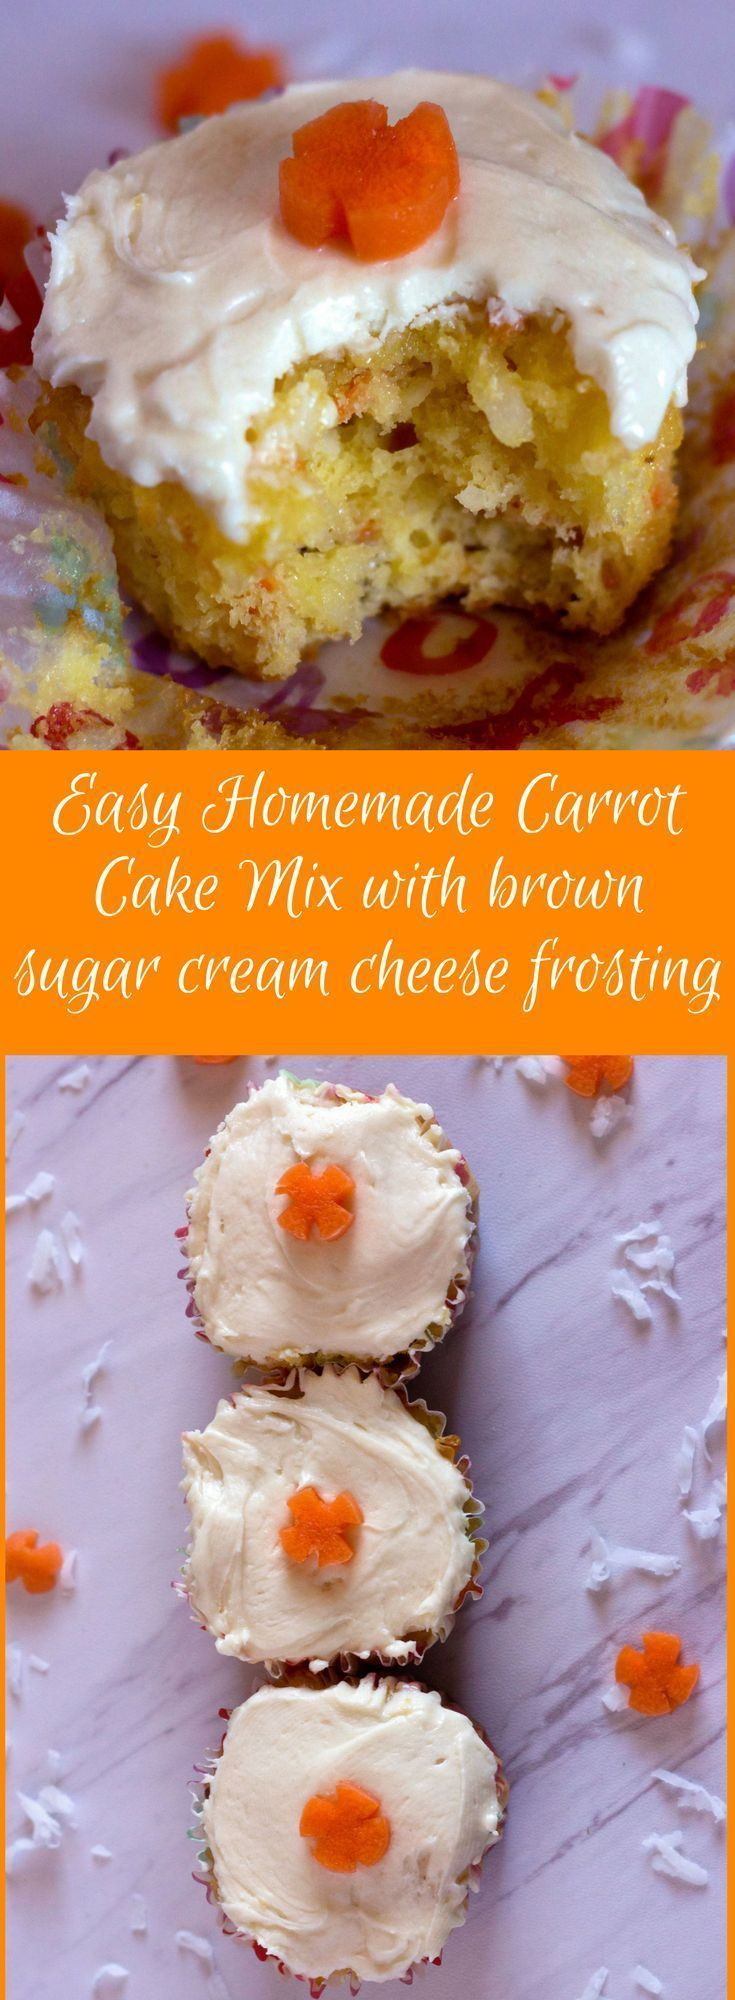 Easy Homemade Carrot Cake Mix Easy Homemade Carrot Cake Mix with brown sugar cream cheese frosting will be the easiest homemade carrot cake recipe you will ever make because the base is a yellow cake mix--and the easy frosting is to die for!